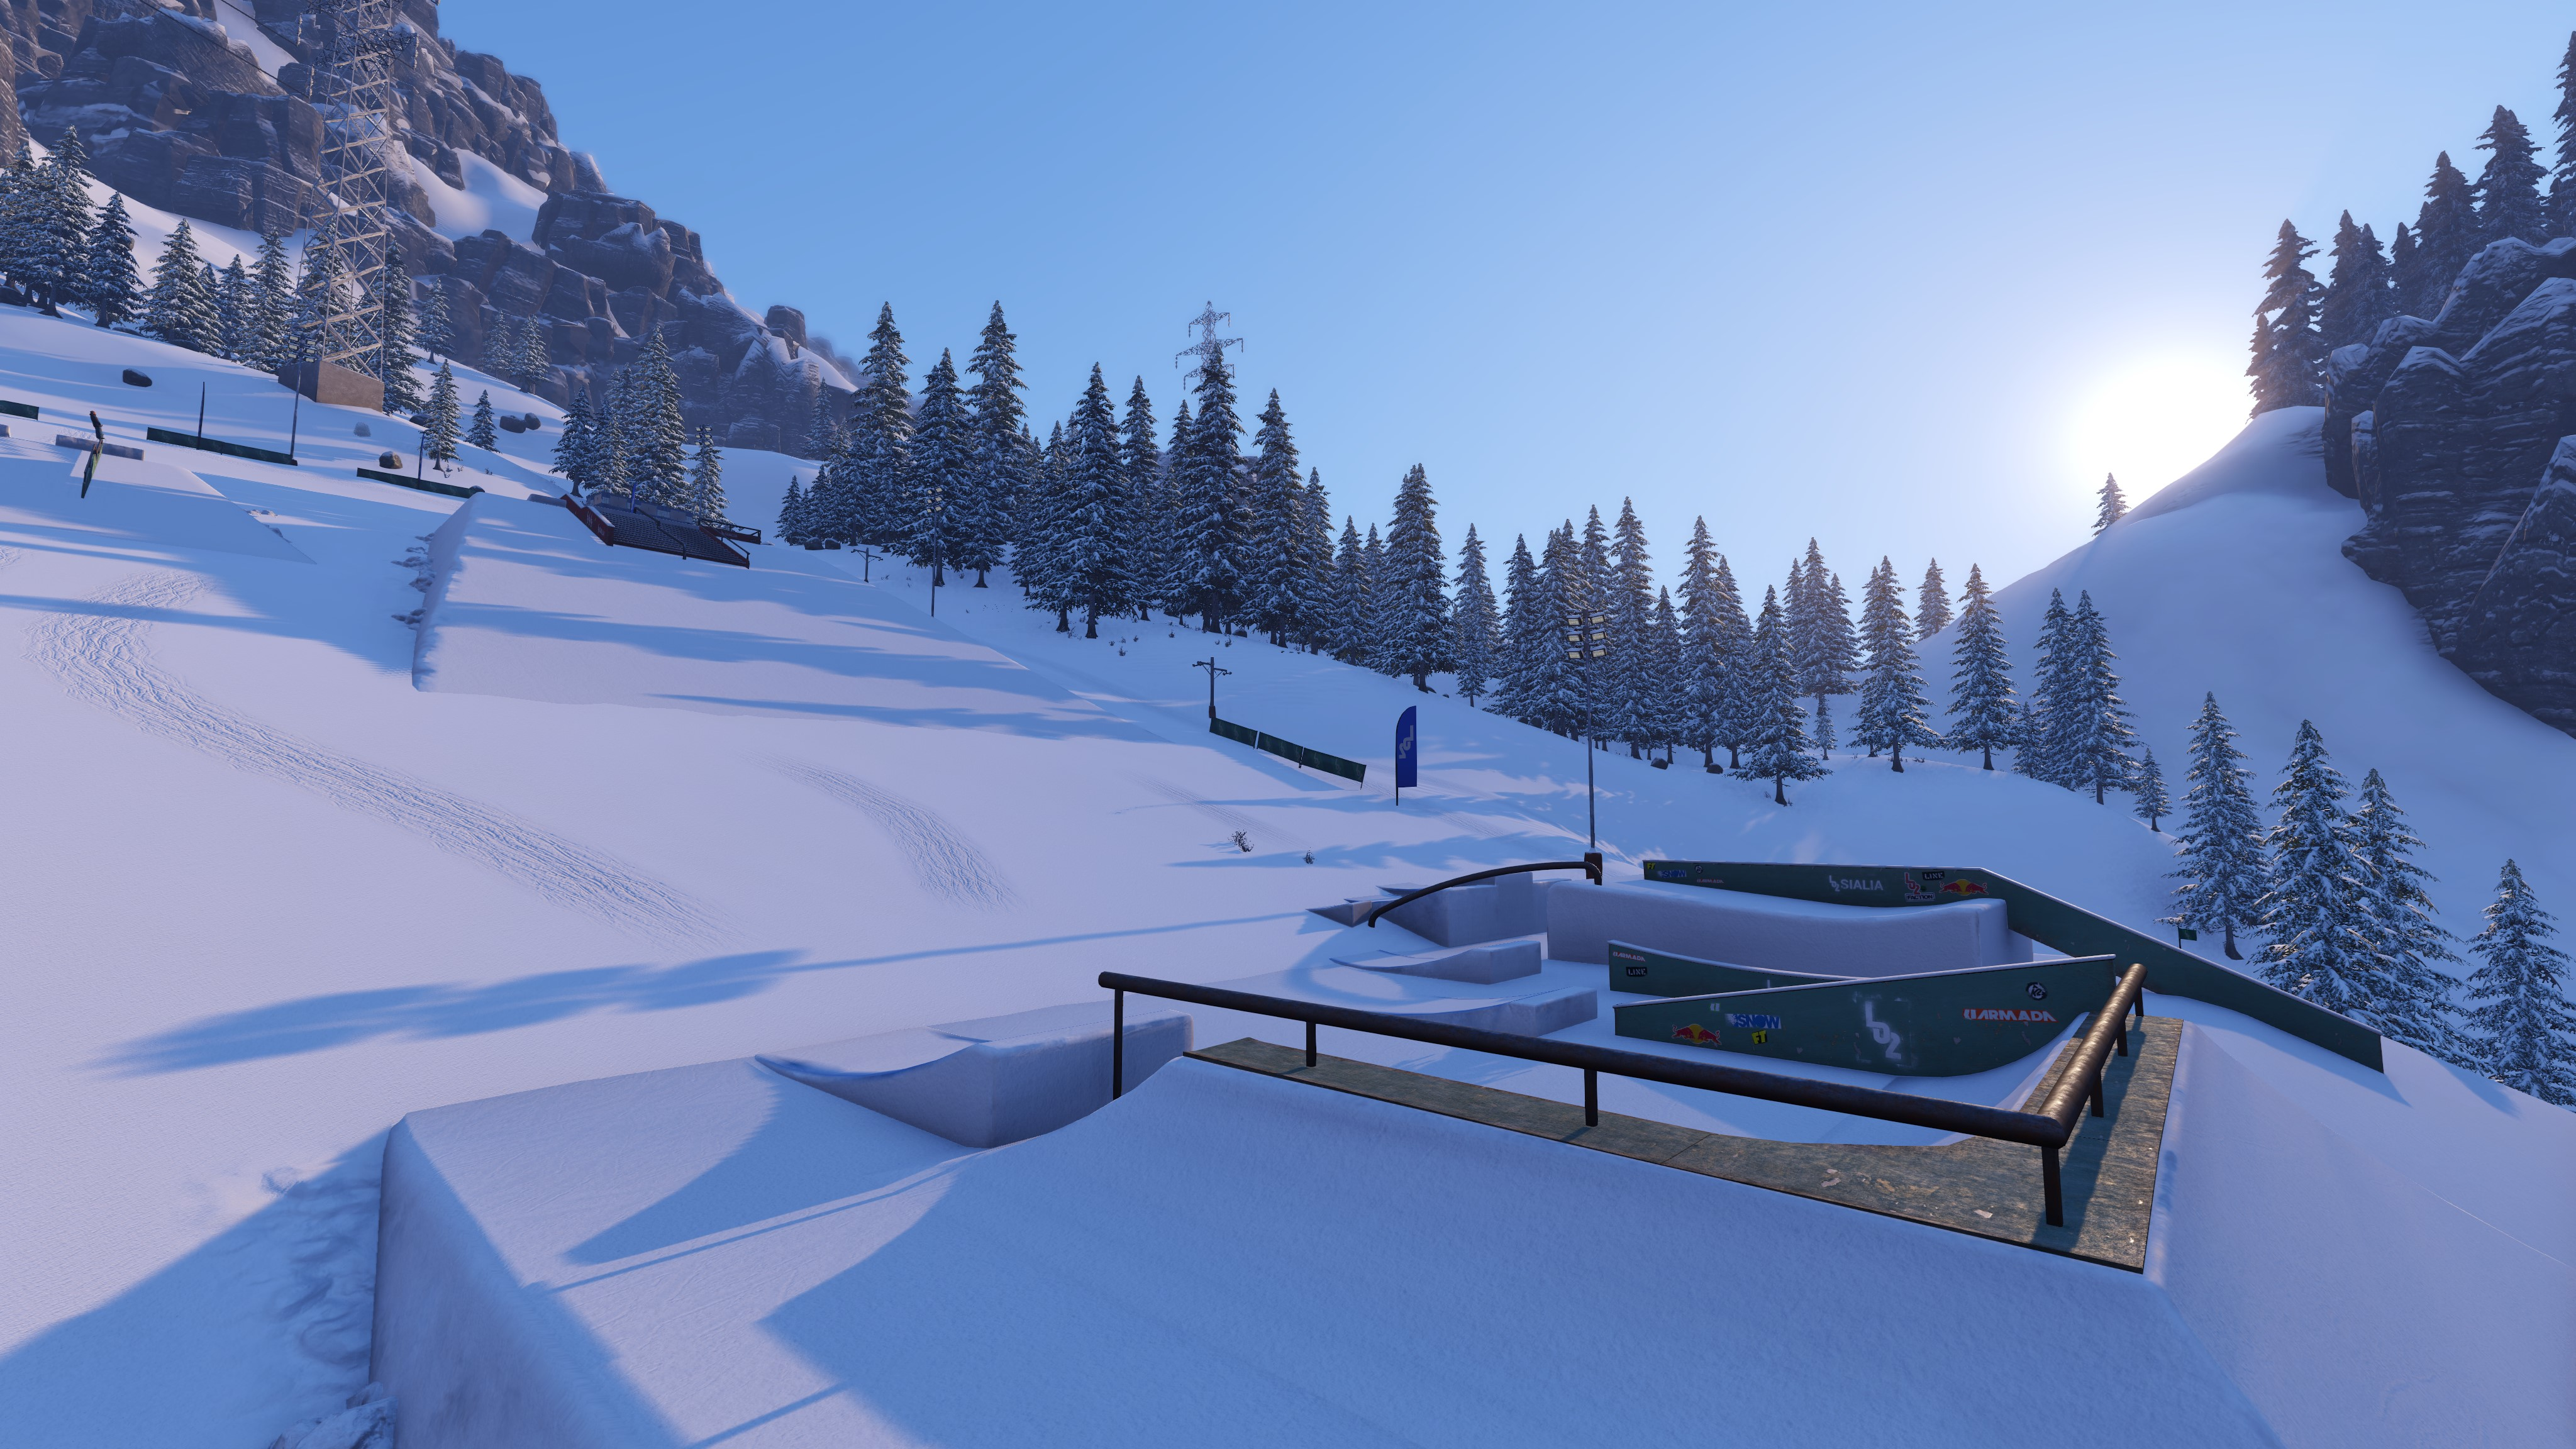 M4 Update Out Now - SNOW